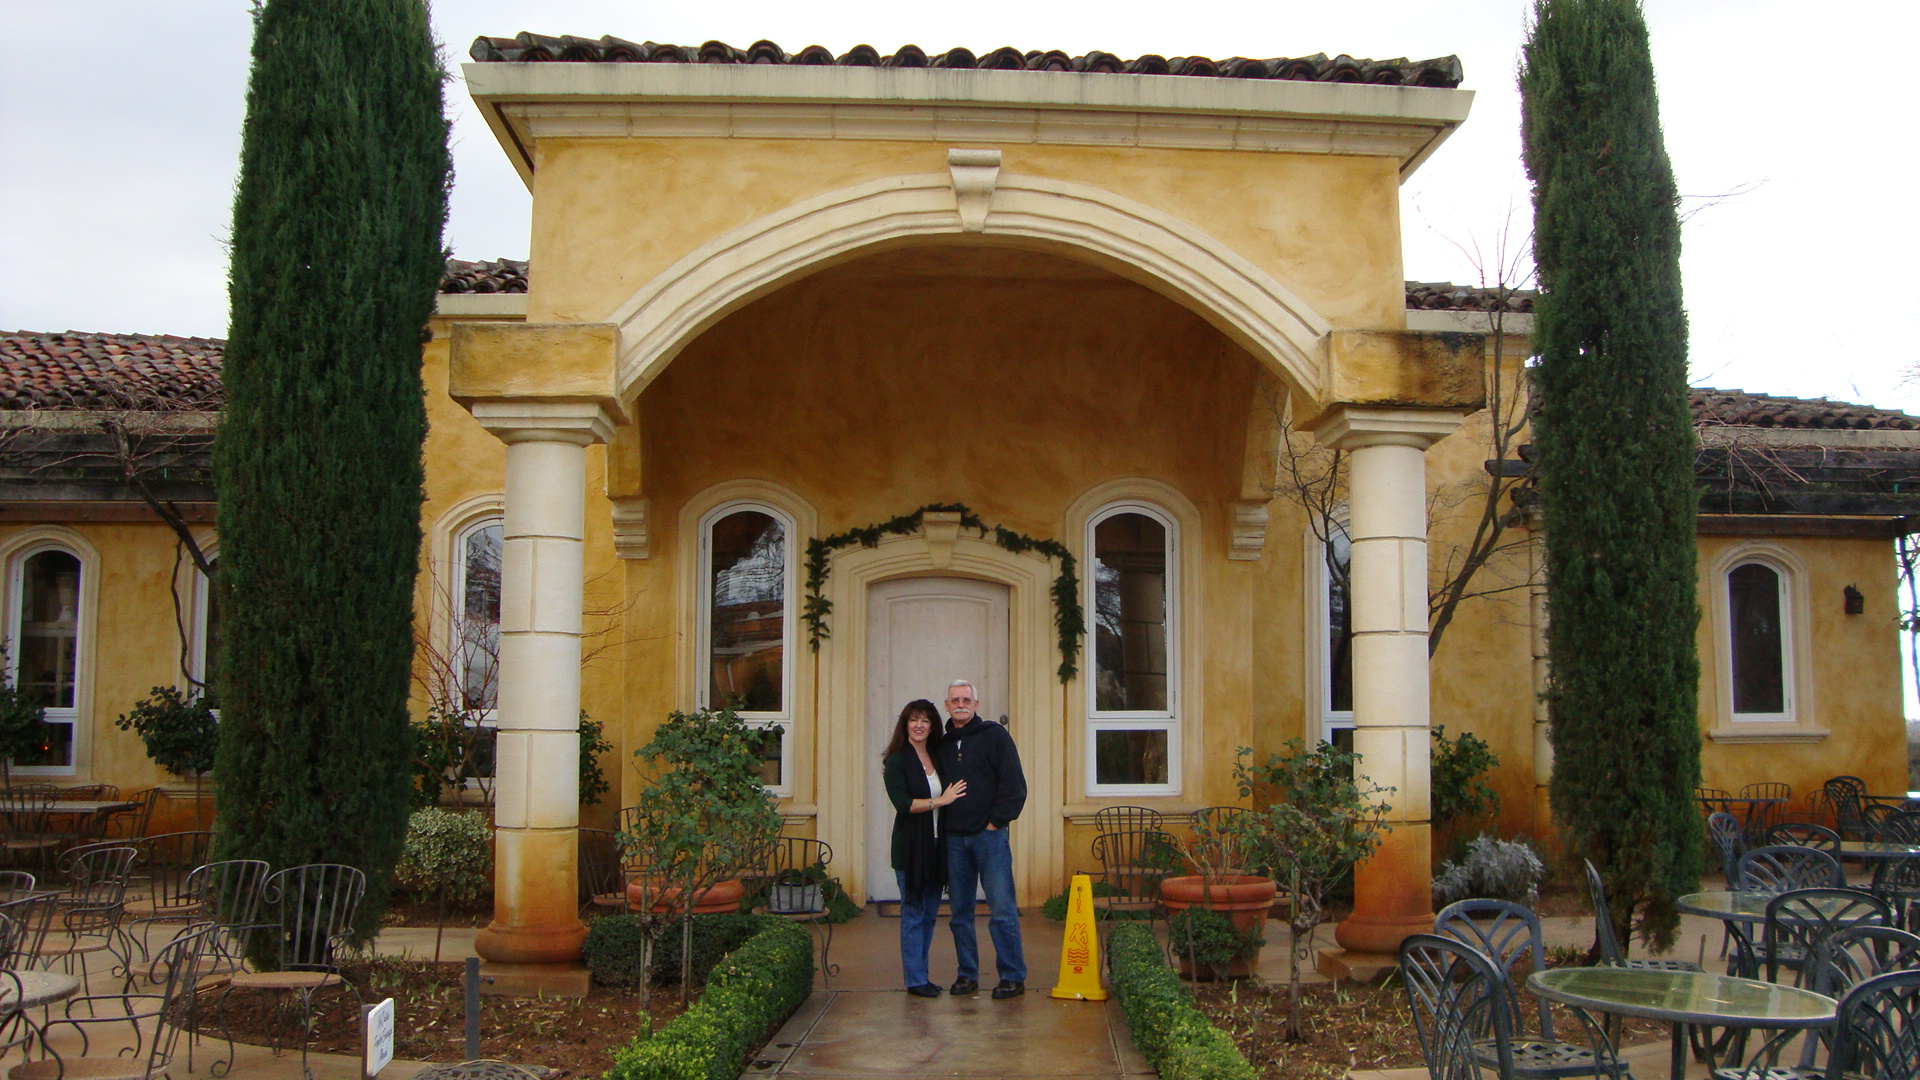 Villa Toscano Winery